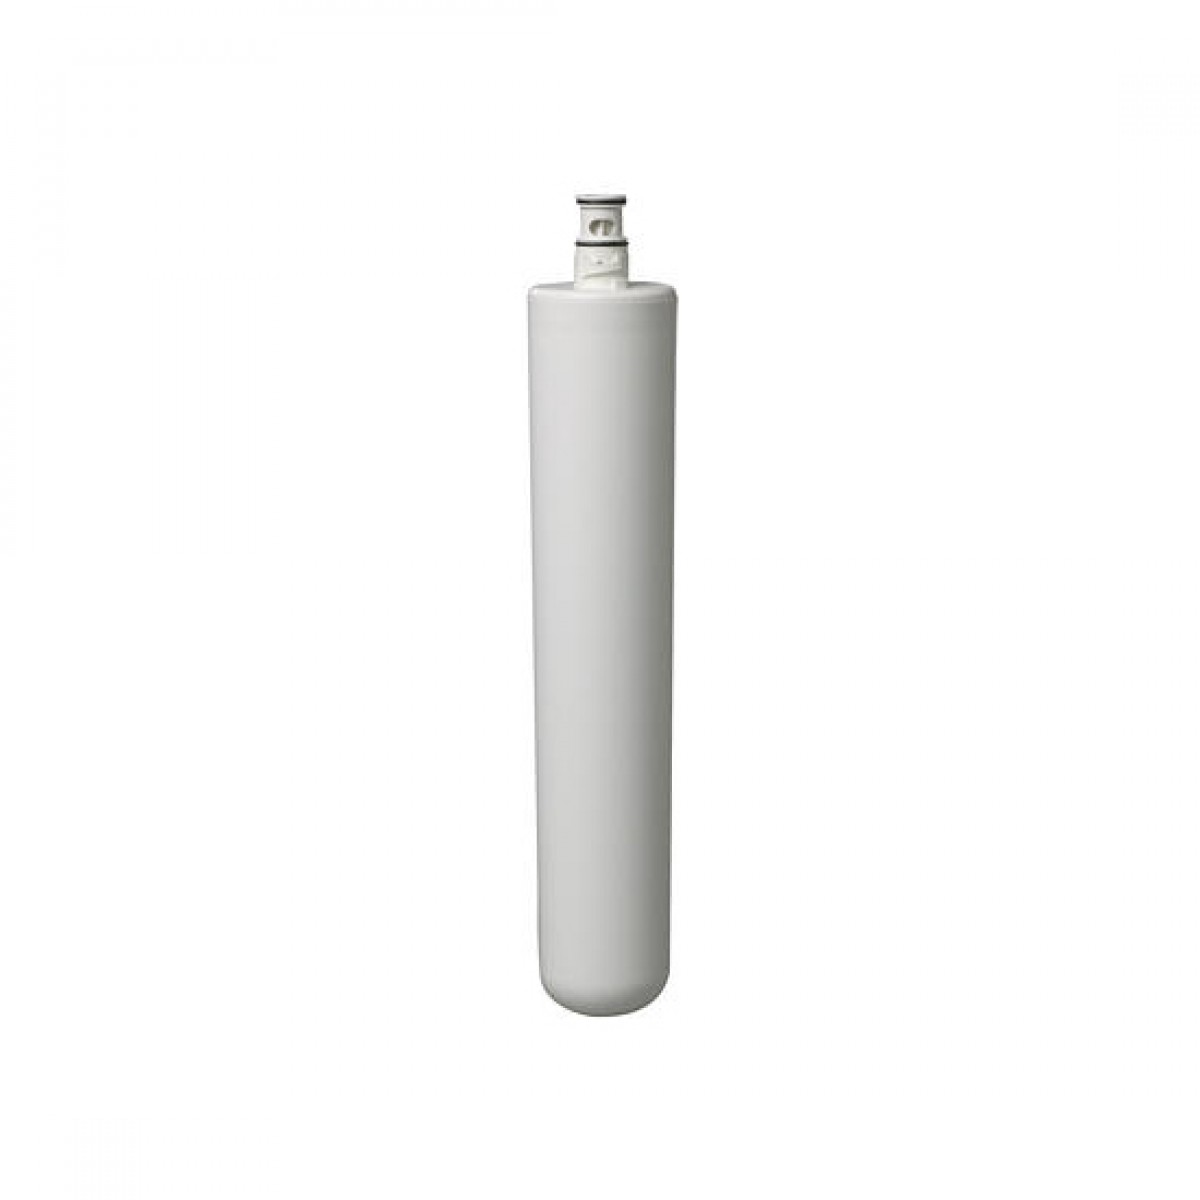 3m Hf25 S Whole House Water Filter Replacement Cartridge